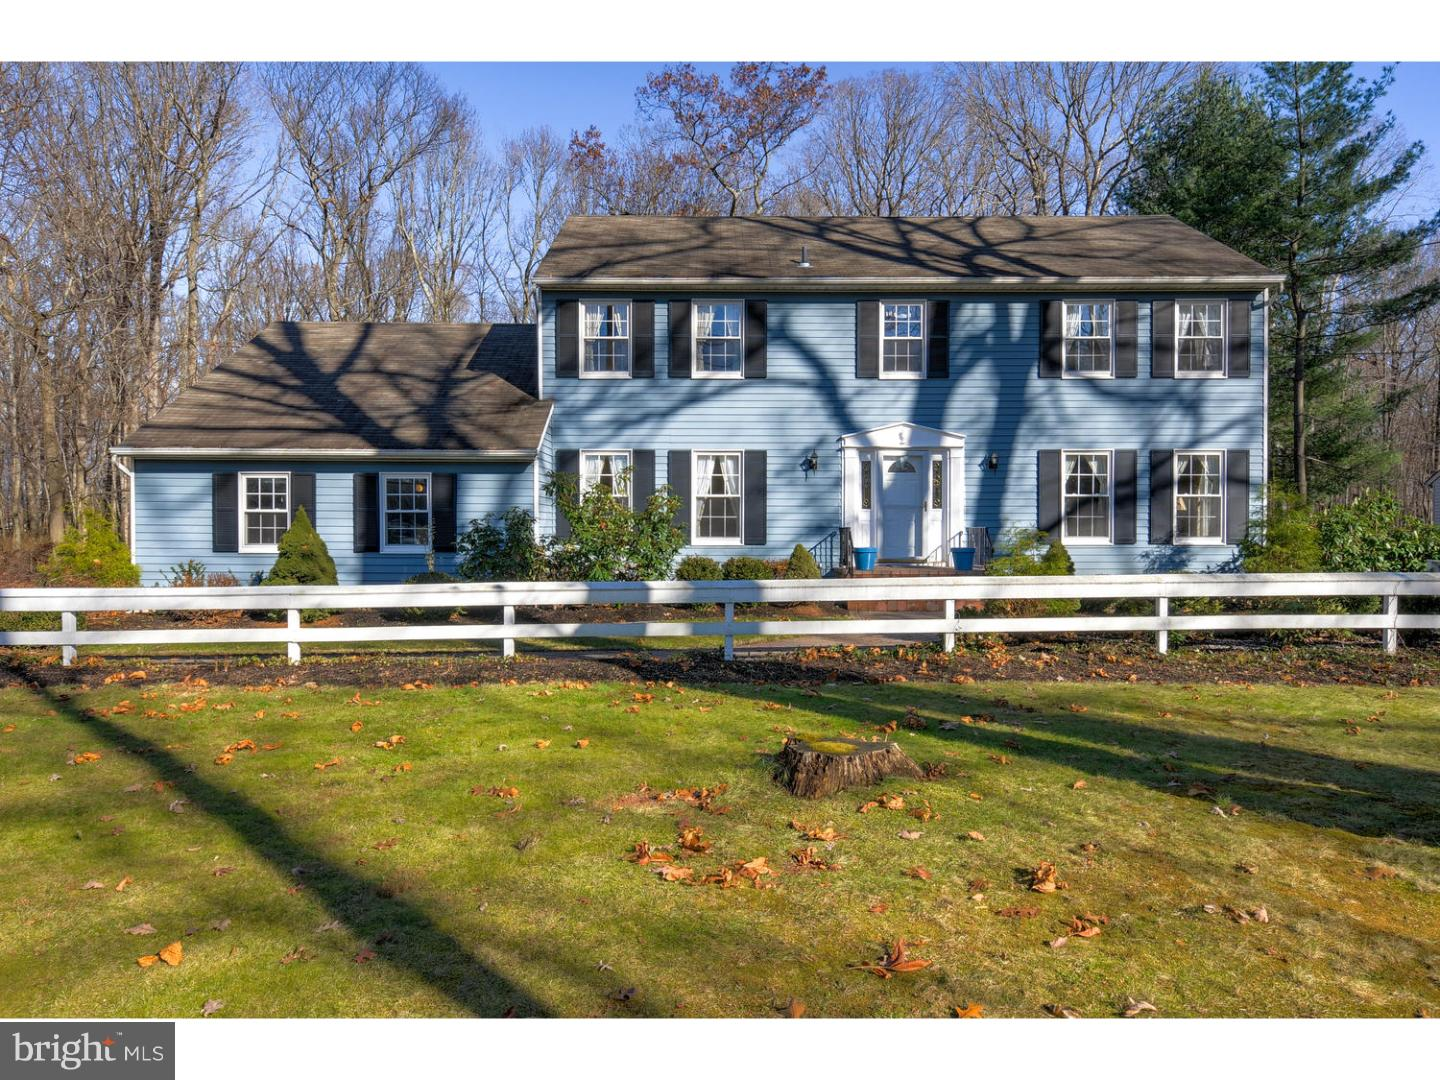 Single Family Home for Sale at 232 VILLAGE RD E Princeton Junction, New Jersey 08550 United StatesMunicipality: West Windsor Twp